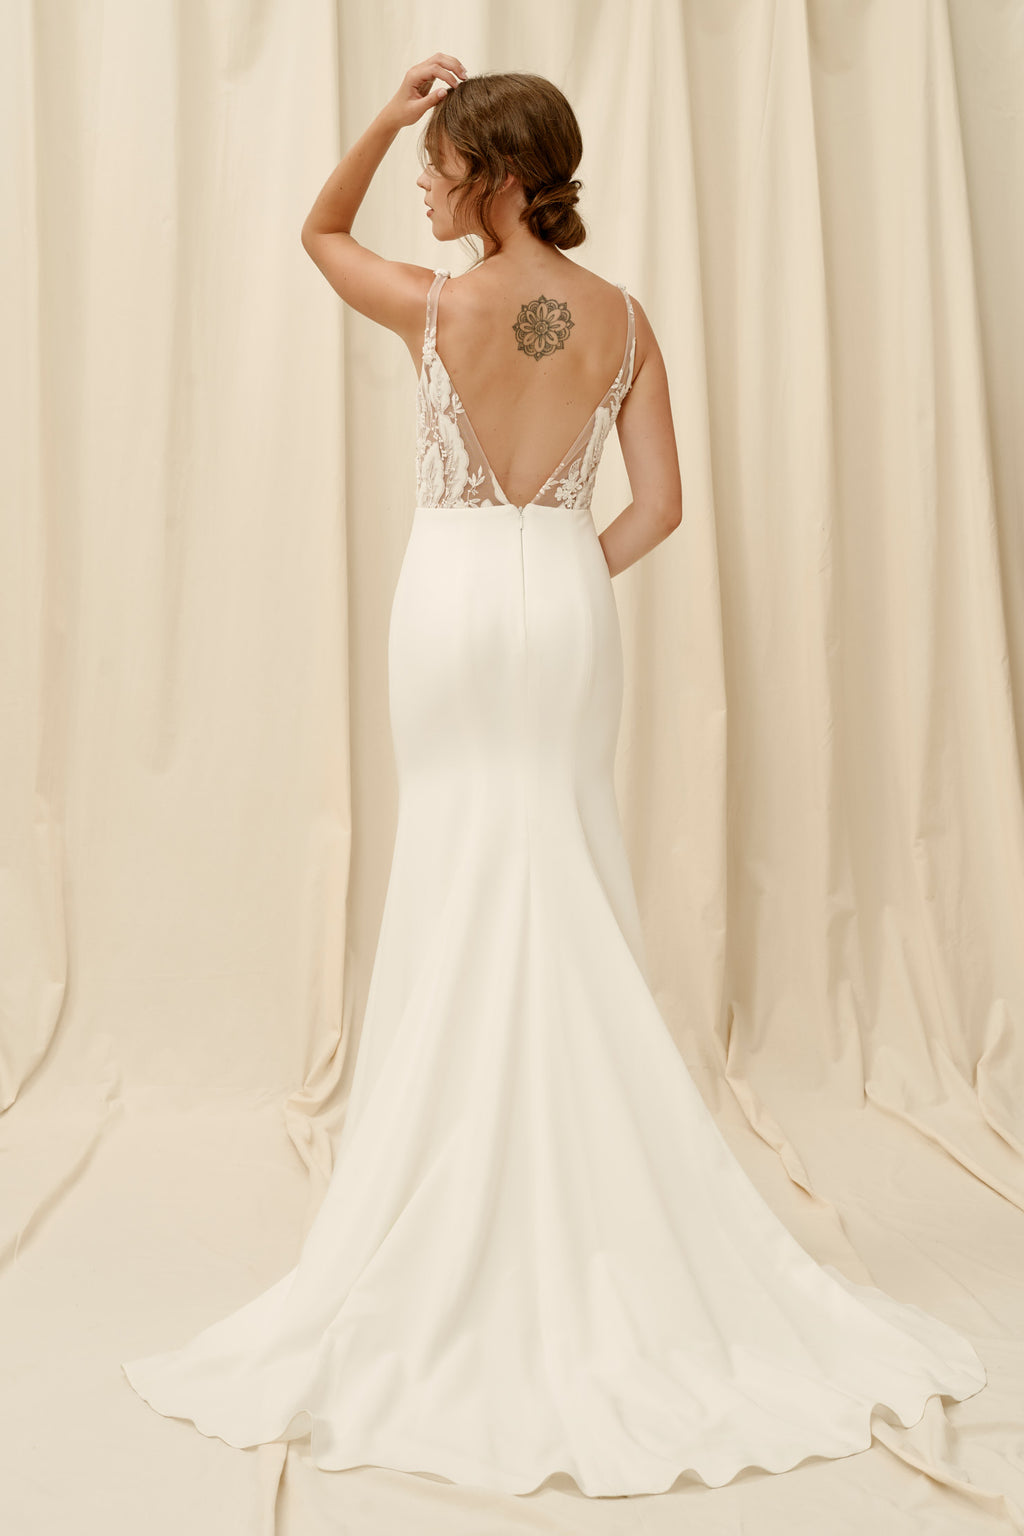 Backless mermaid wedding dress with crepe skirt and lace top